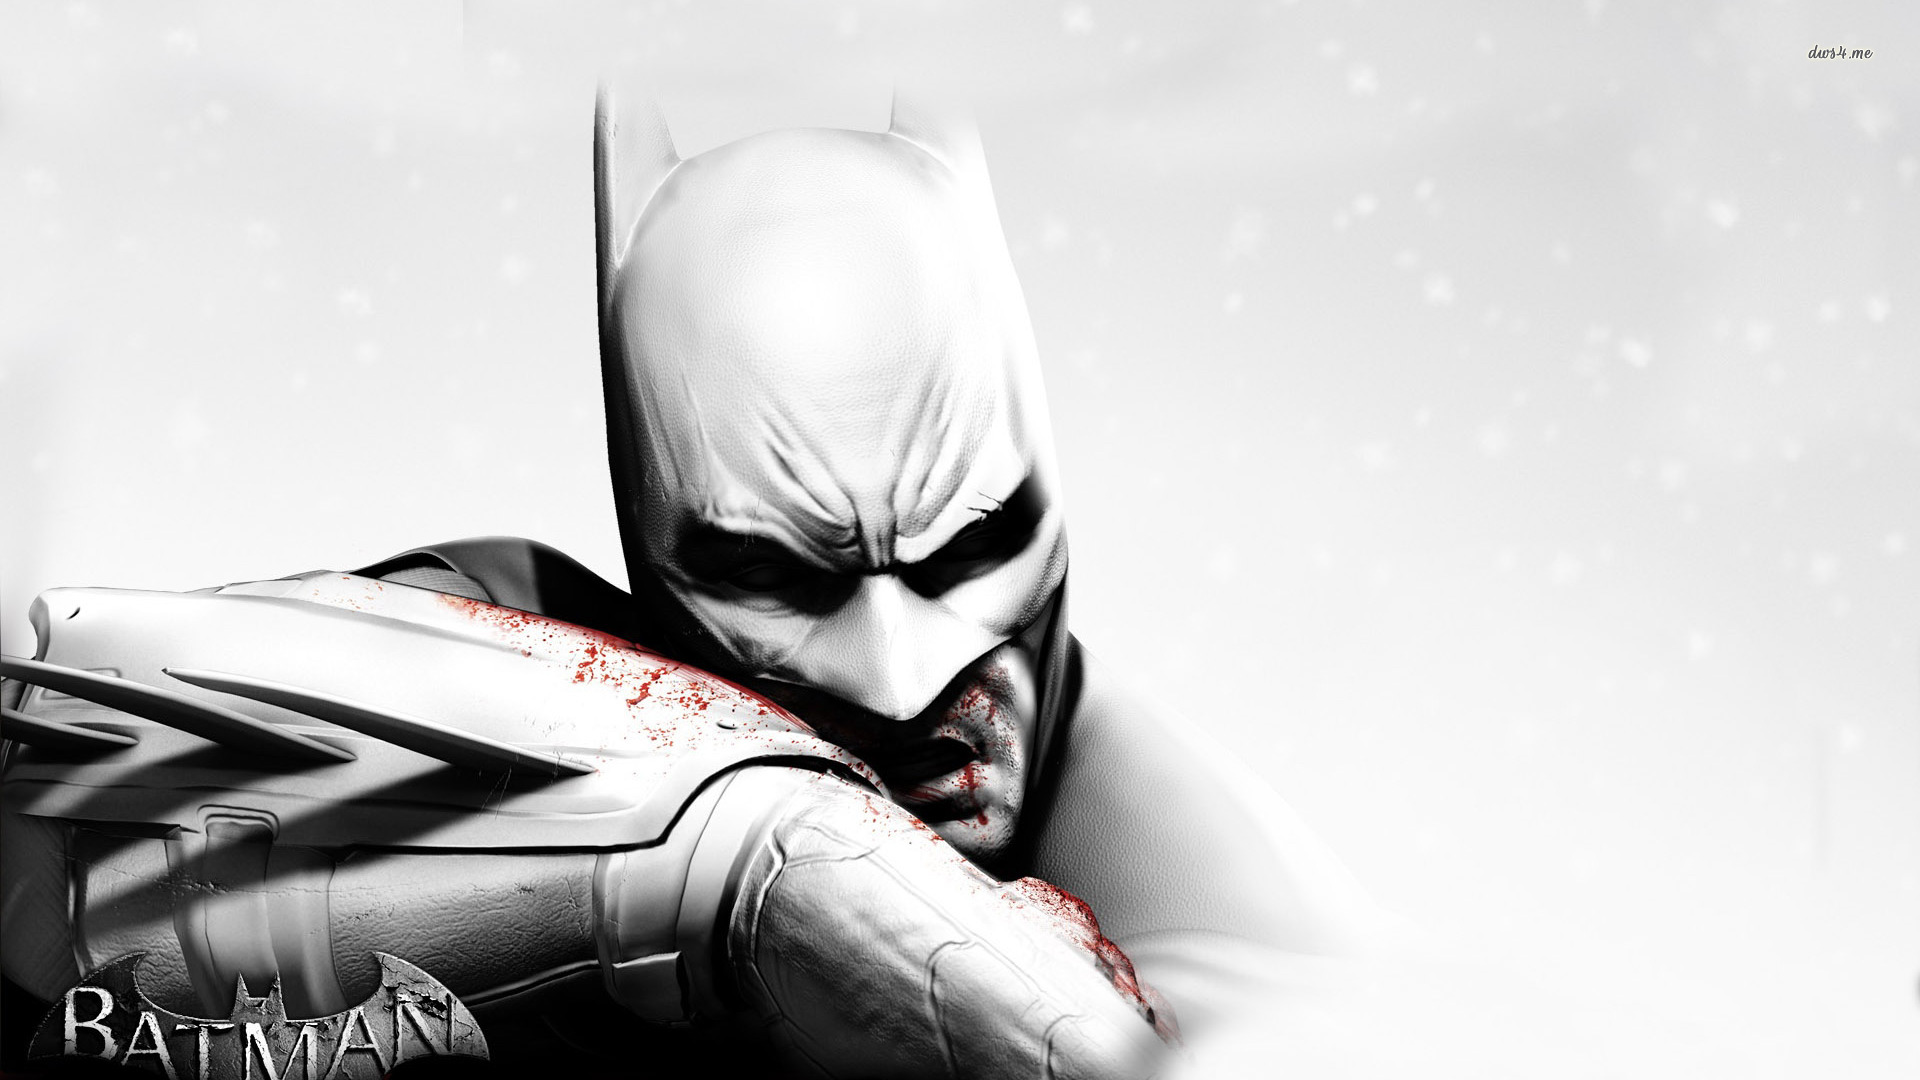 Batman   Arkham City wallpaper   Game wallpapers   7891 1920x1080